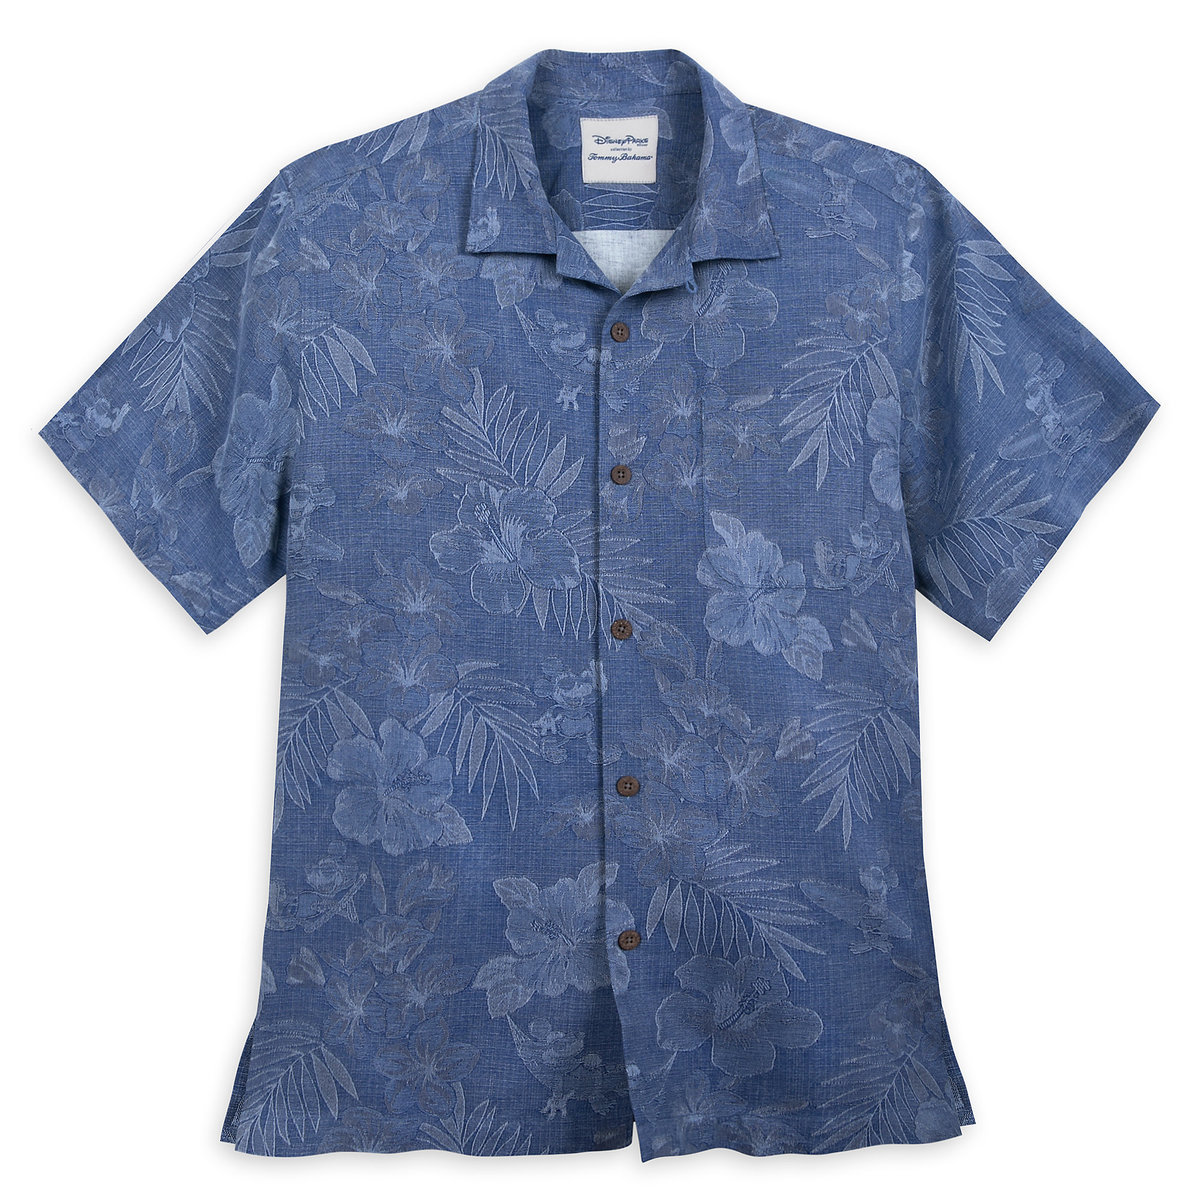 3205590f Product Image of Mickey Mouse Jacquard Aloha Silk Shirt for Men by Tommy  Bahama - Blue